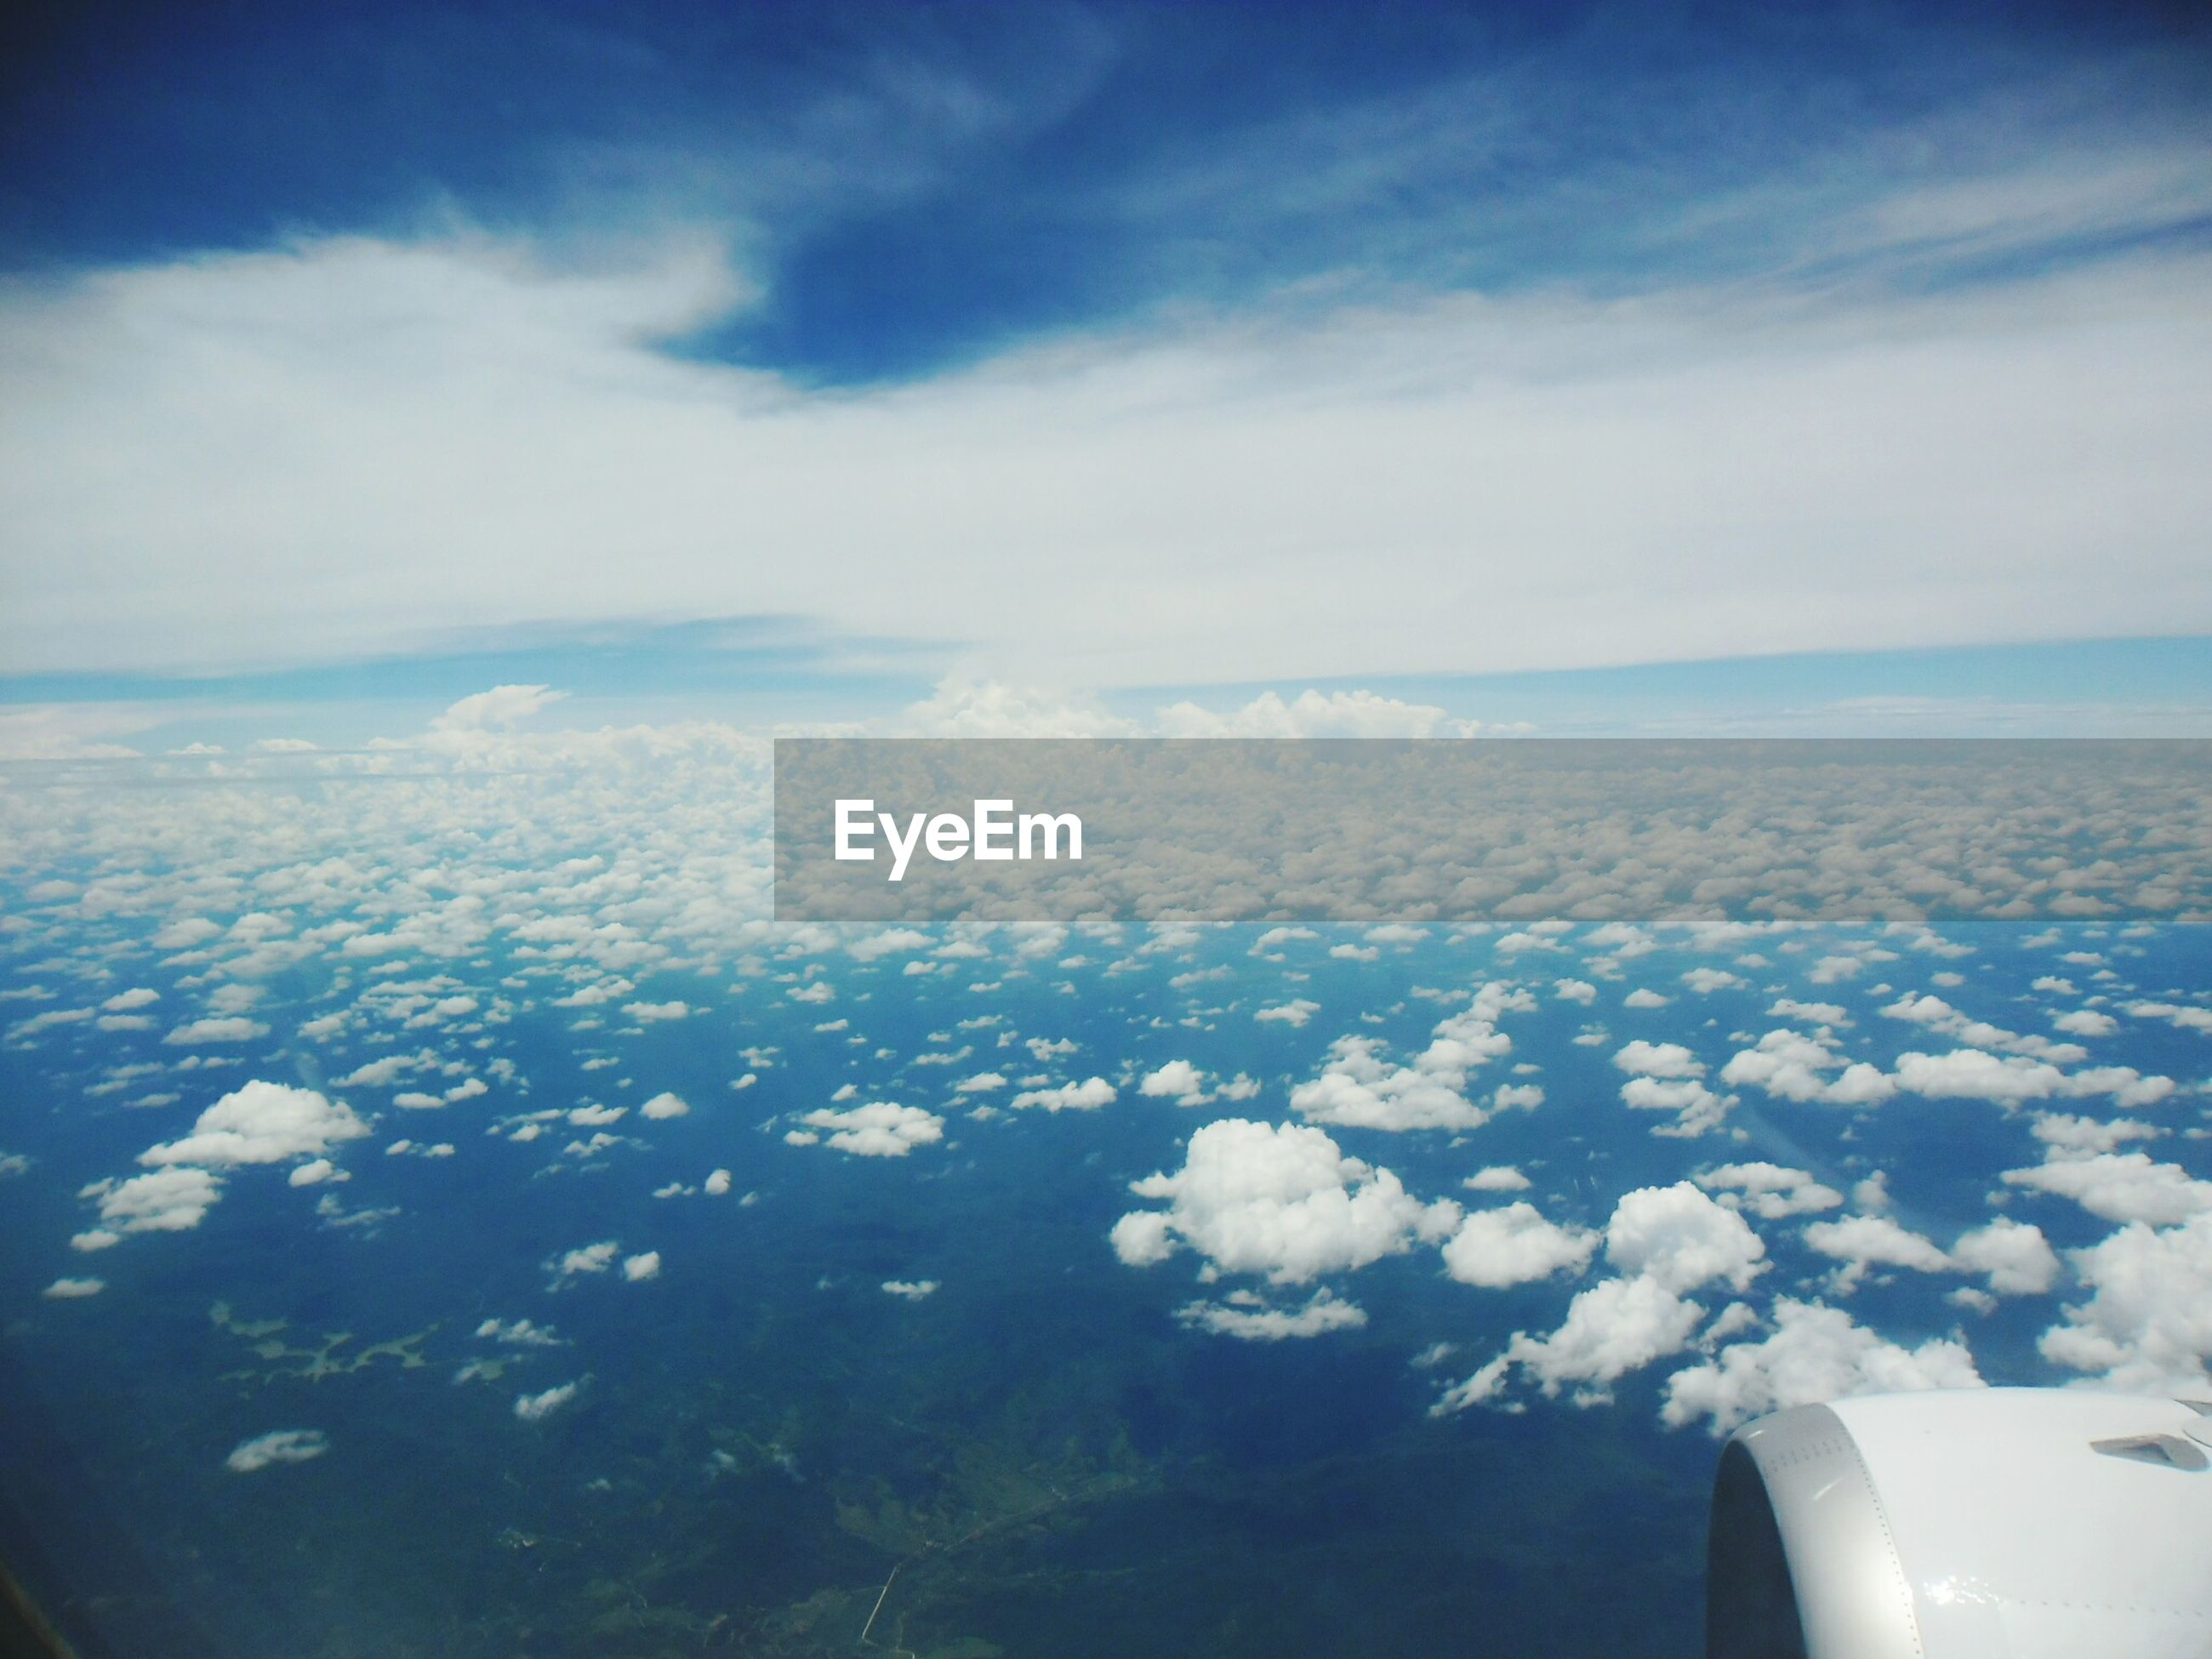 airplane, sky, transportation, mode of transport, air vehicle, aerial view, part of, cropped, blue, beauty in nature, scenics, flying, cloud - sky, aircraft wing, window, nature, vehicle interior, cloudscape, cloud, travel